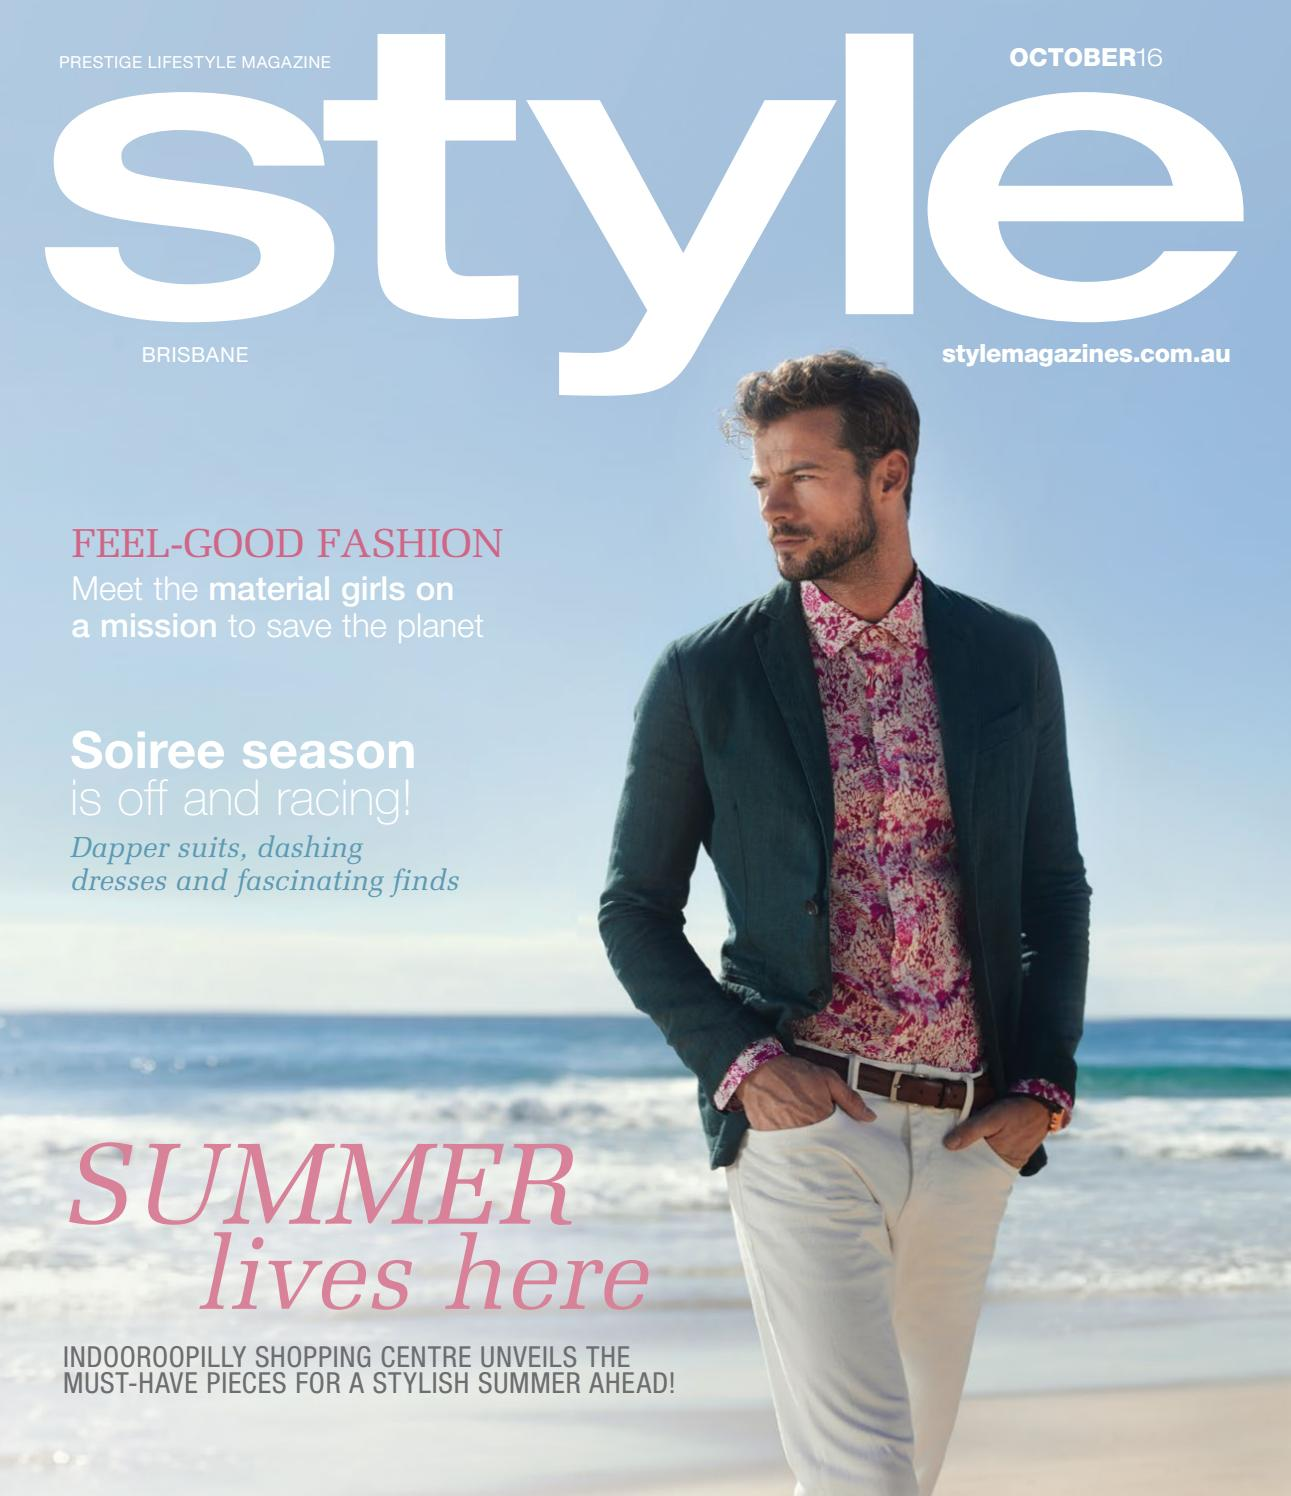 STYLE | October 2016 by Style Media issuu